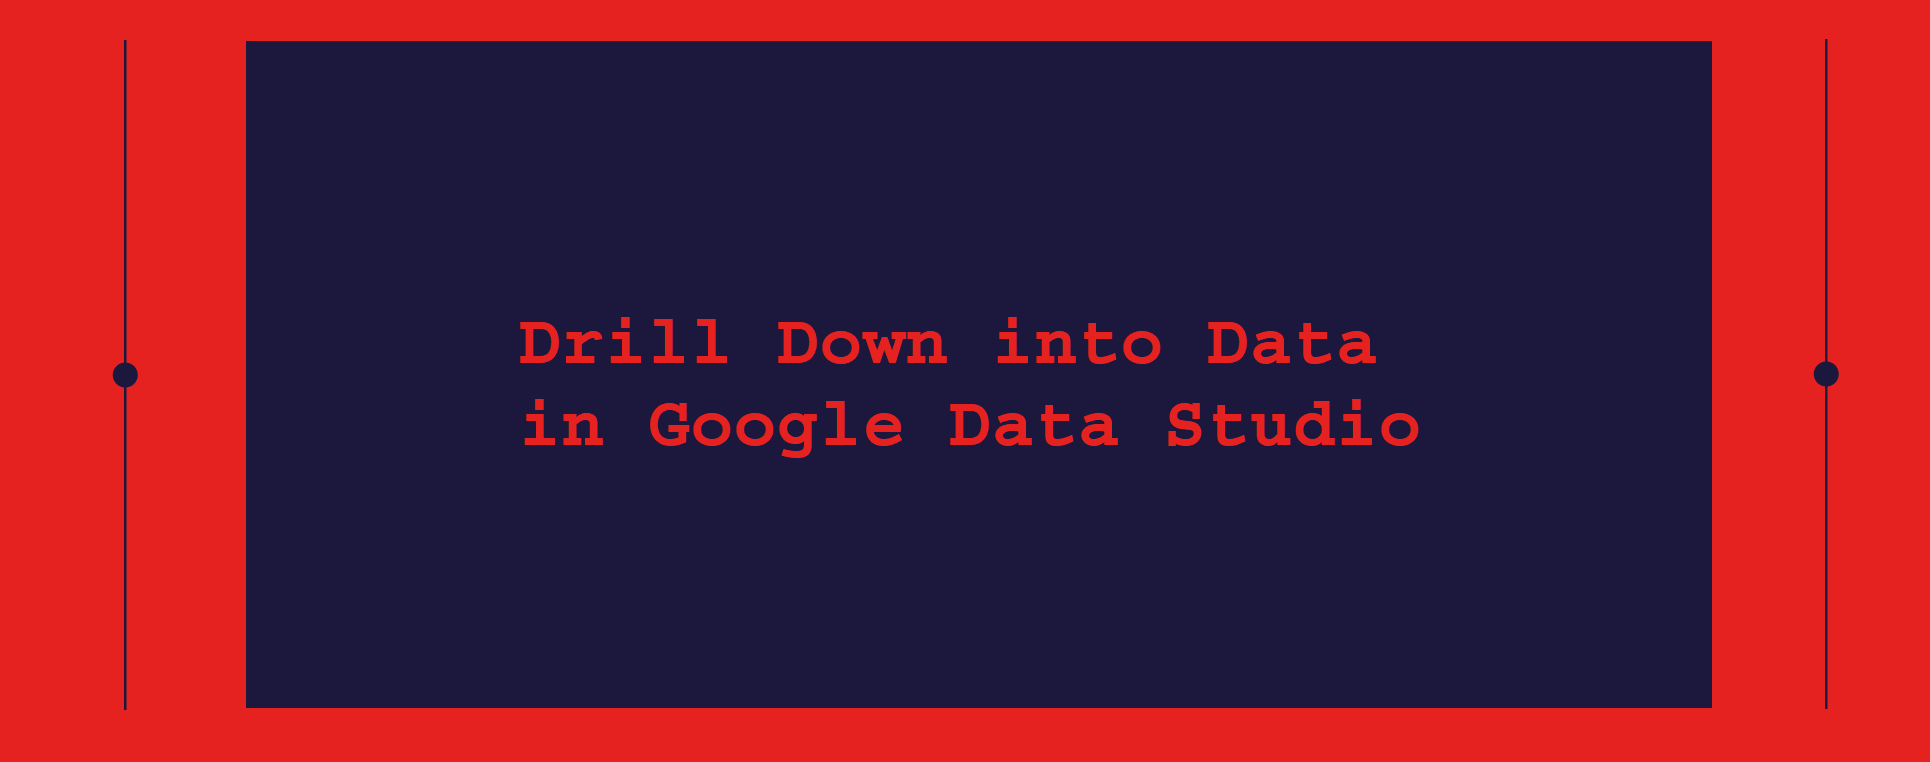 Drilling Down into Data in Google Data Studio